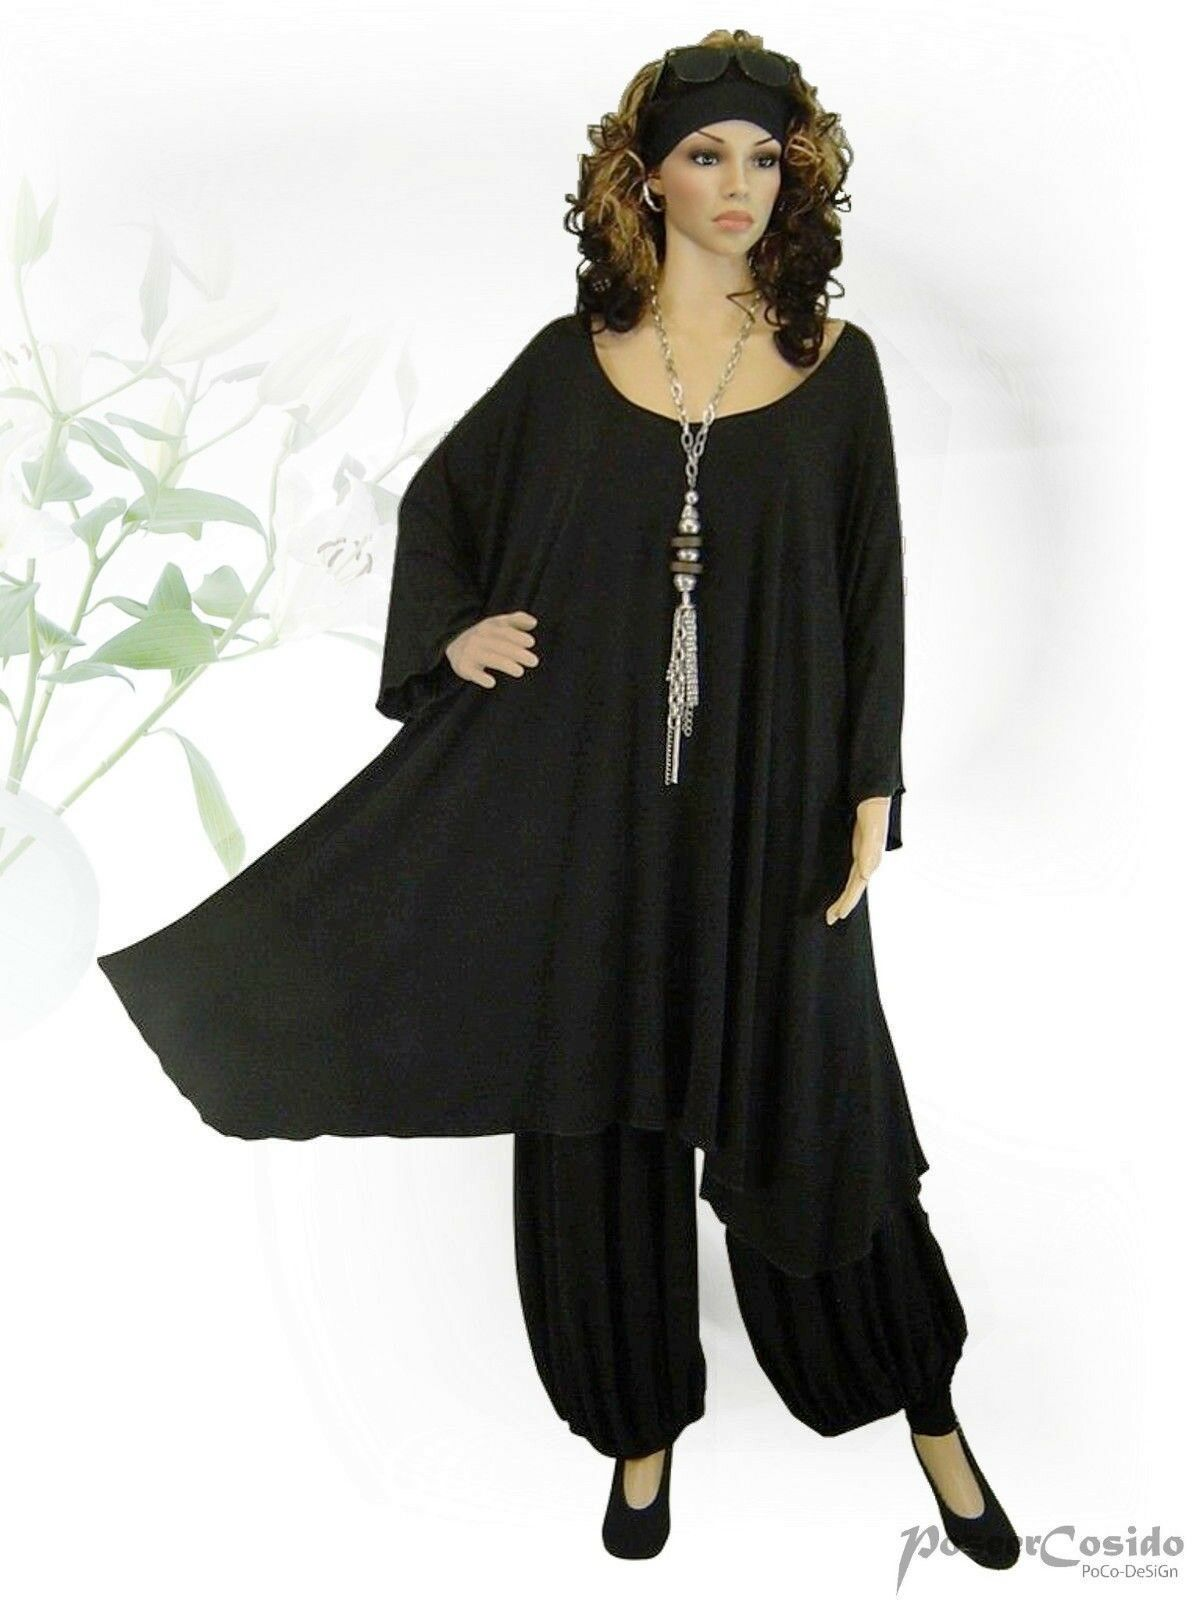 PoCo DeSiGn° LAGENLOOK BASIC Tunika Long-Shirt Überwurf XXL XXXL 56 58 60 62 64